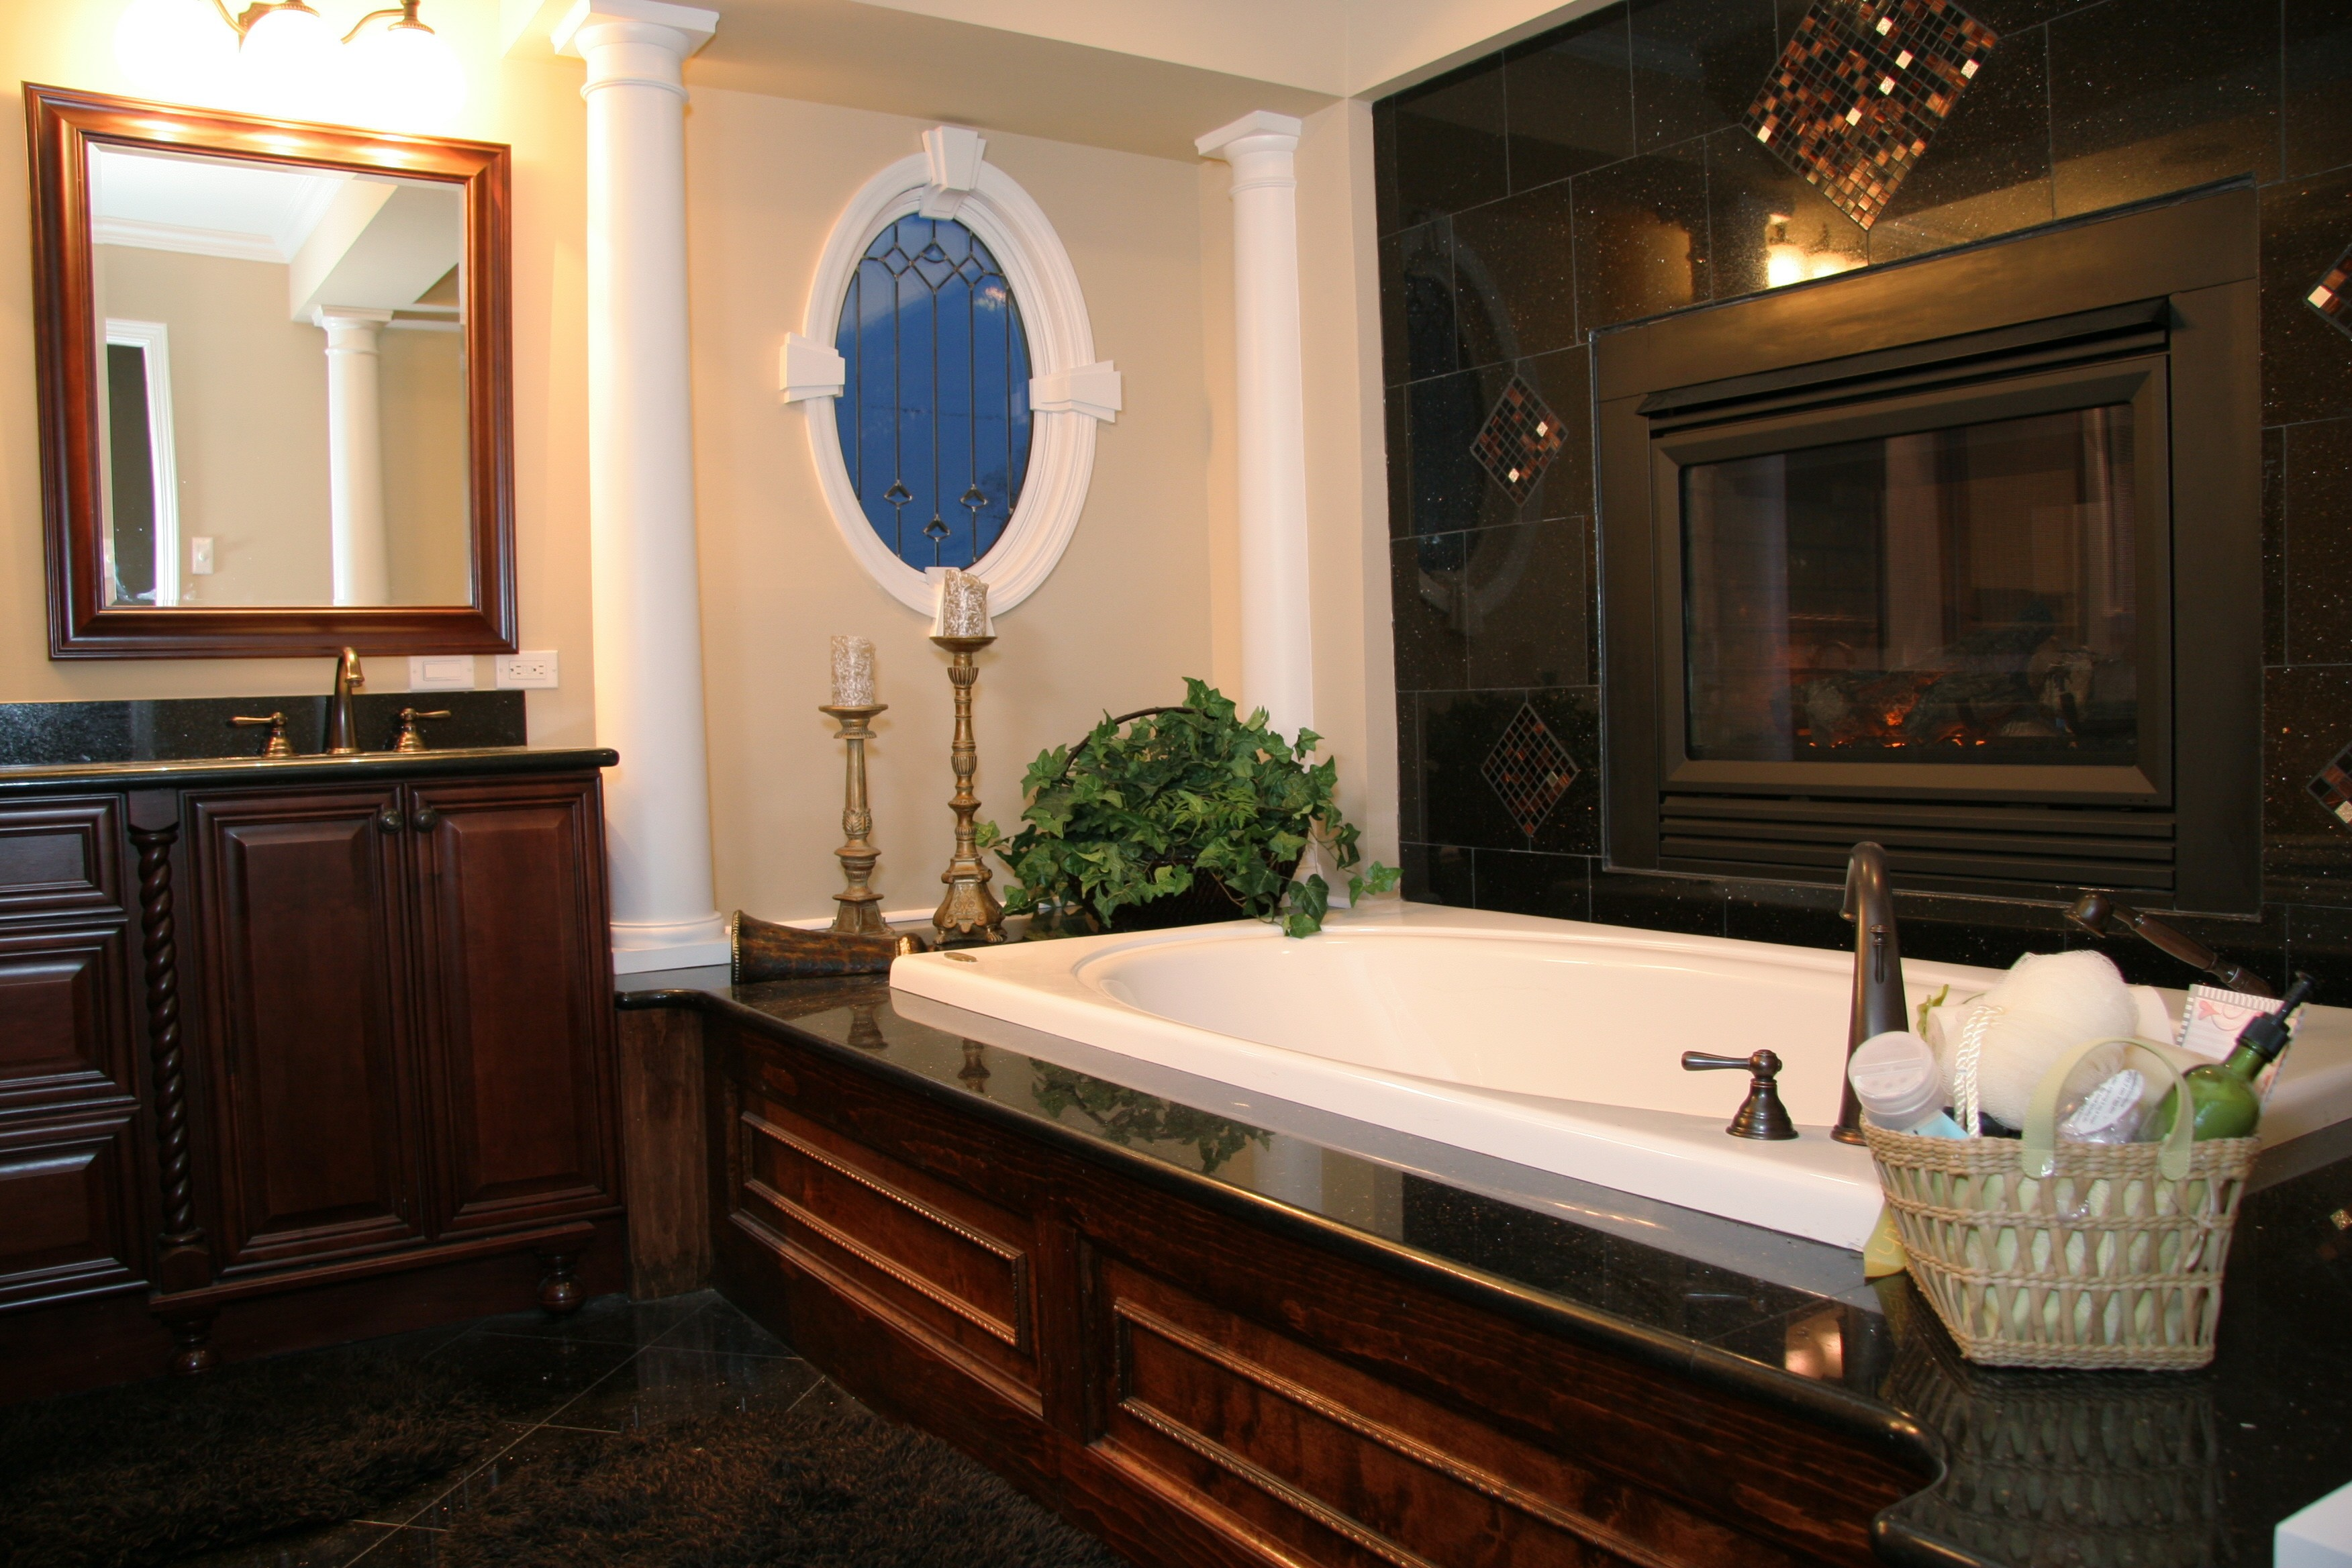 Cost Estimates For Monmouth County Bathroom Remodel Projects - Bathroom remodel guide